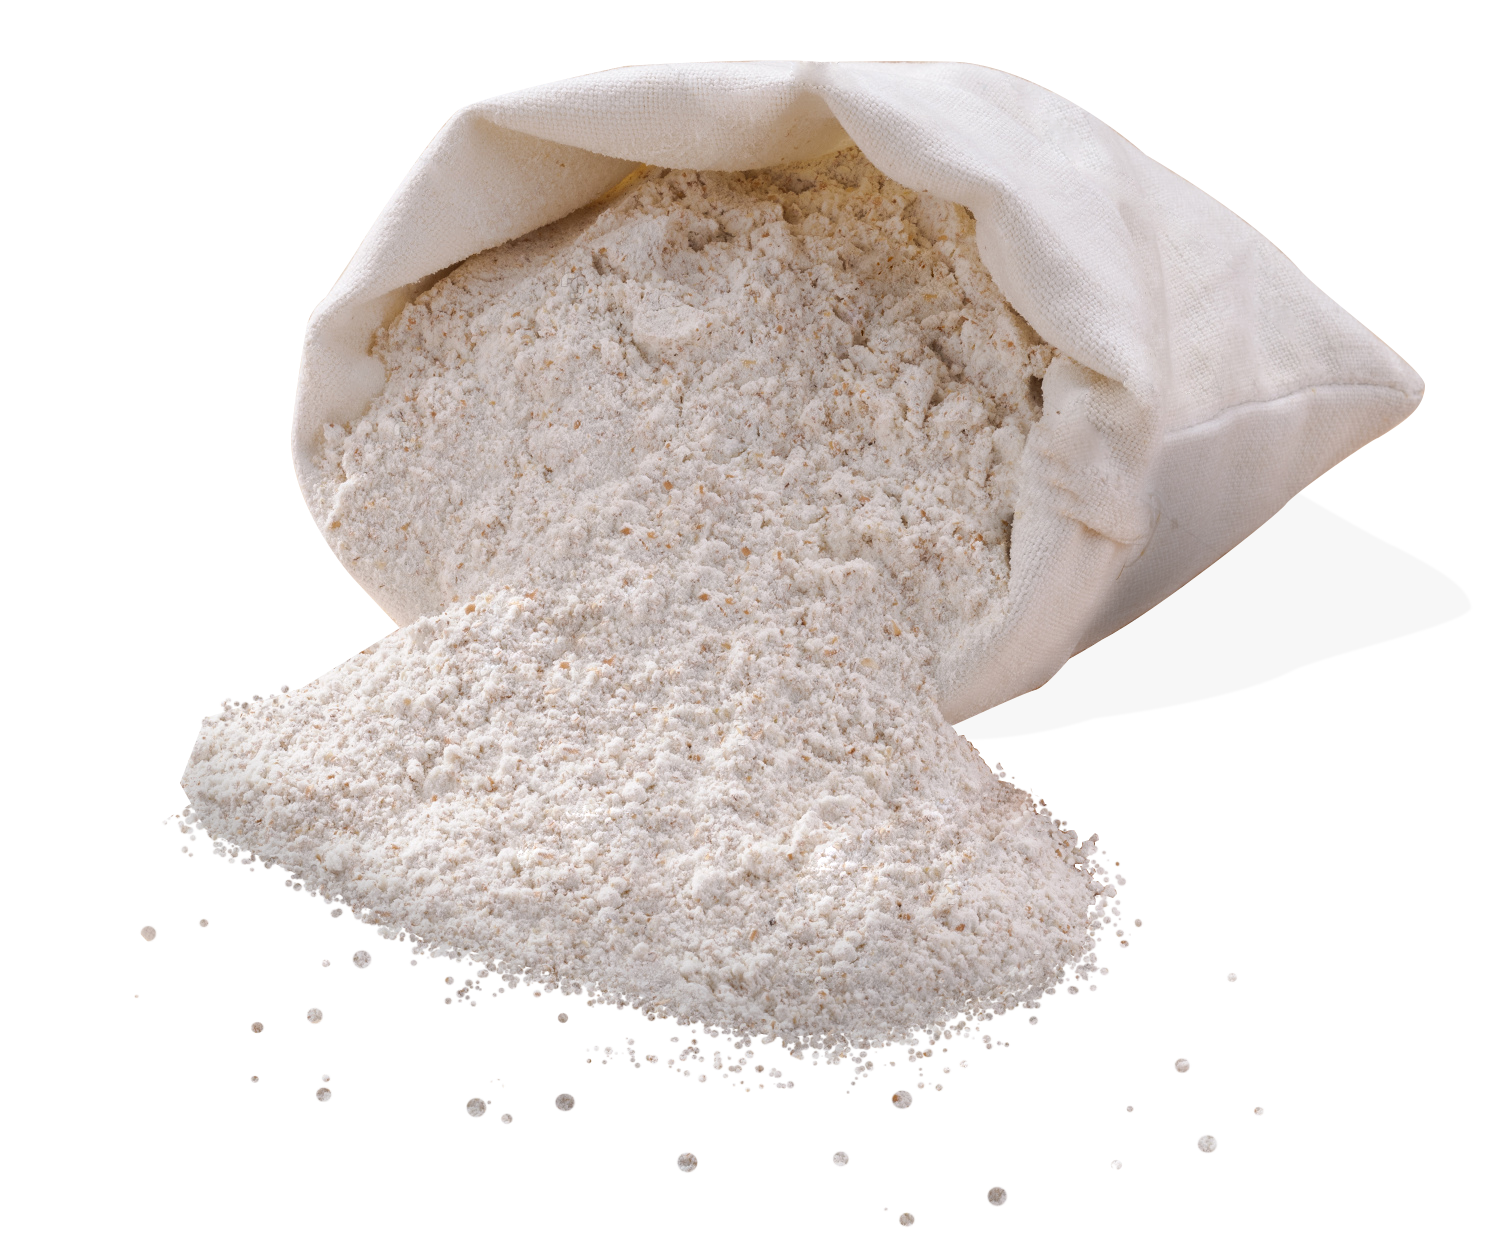 stock-photo-whole-wheat-flour-in-the-sac-96265022